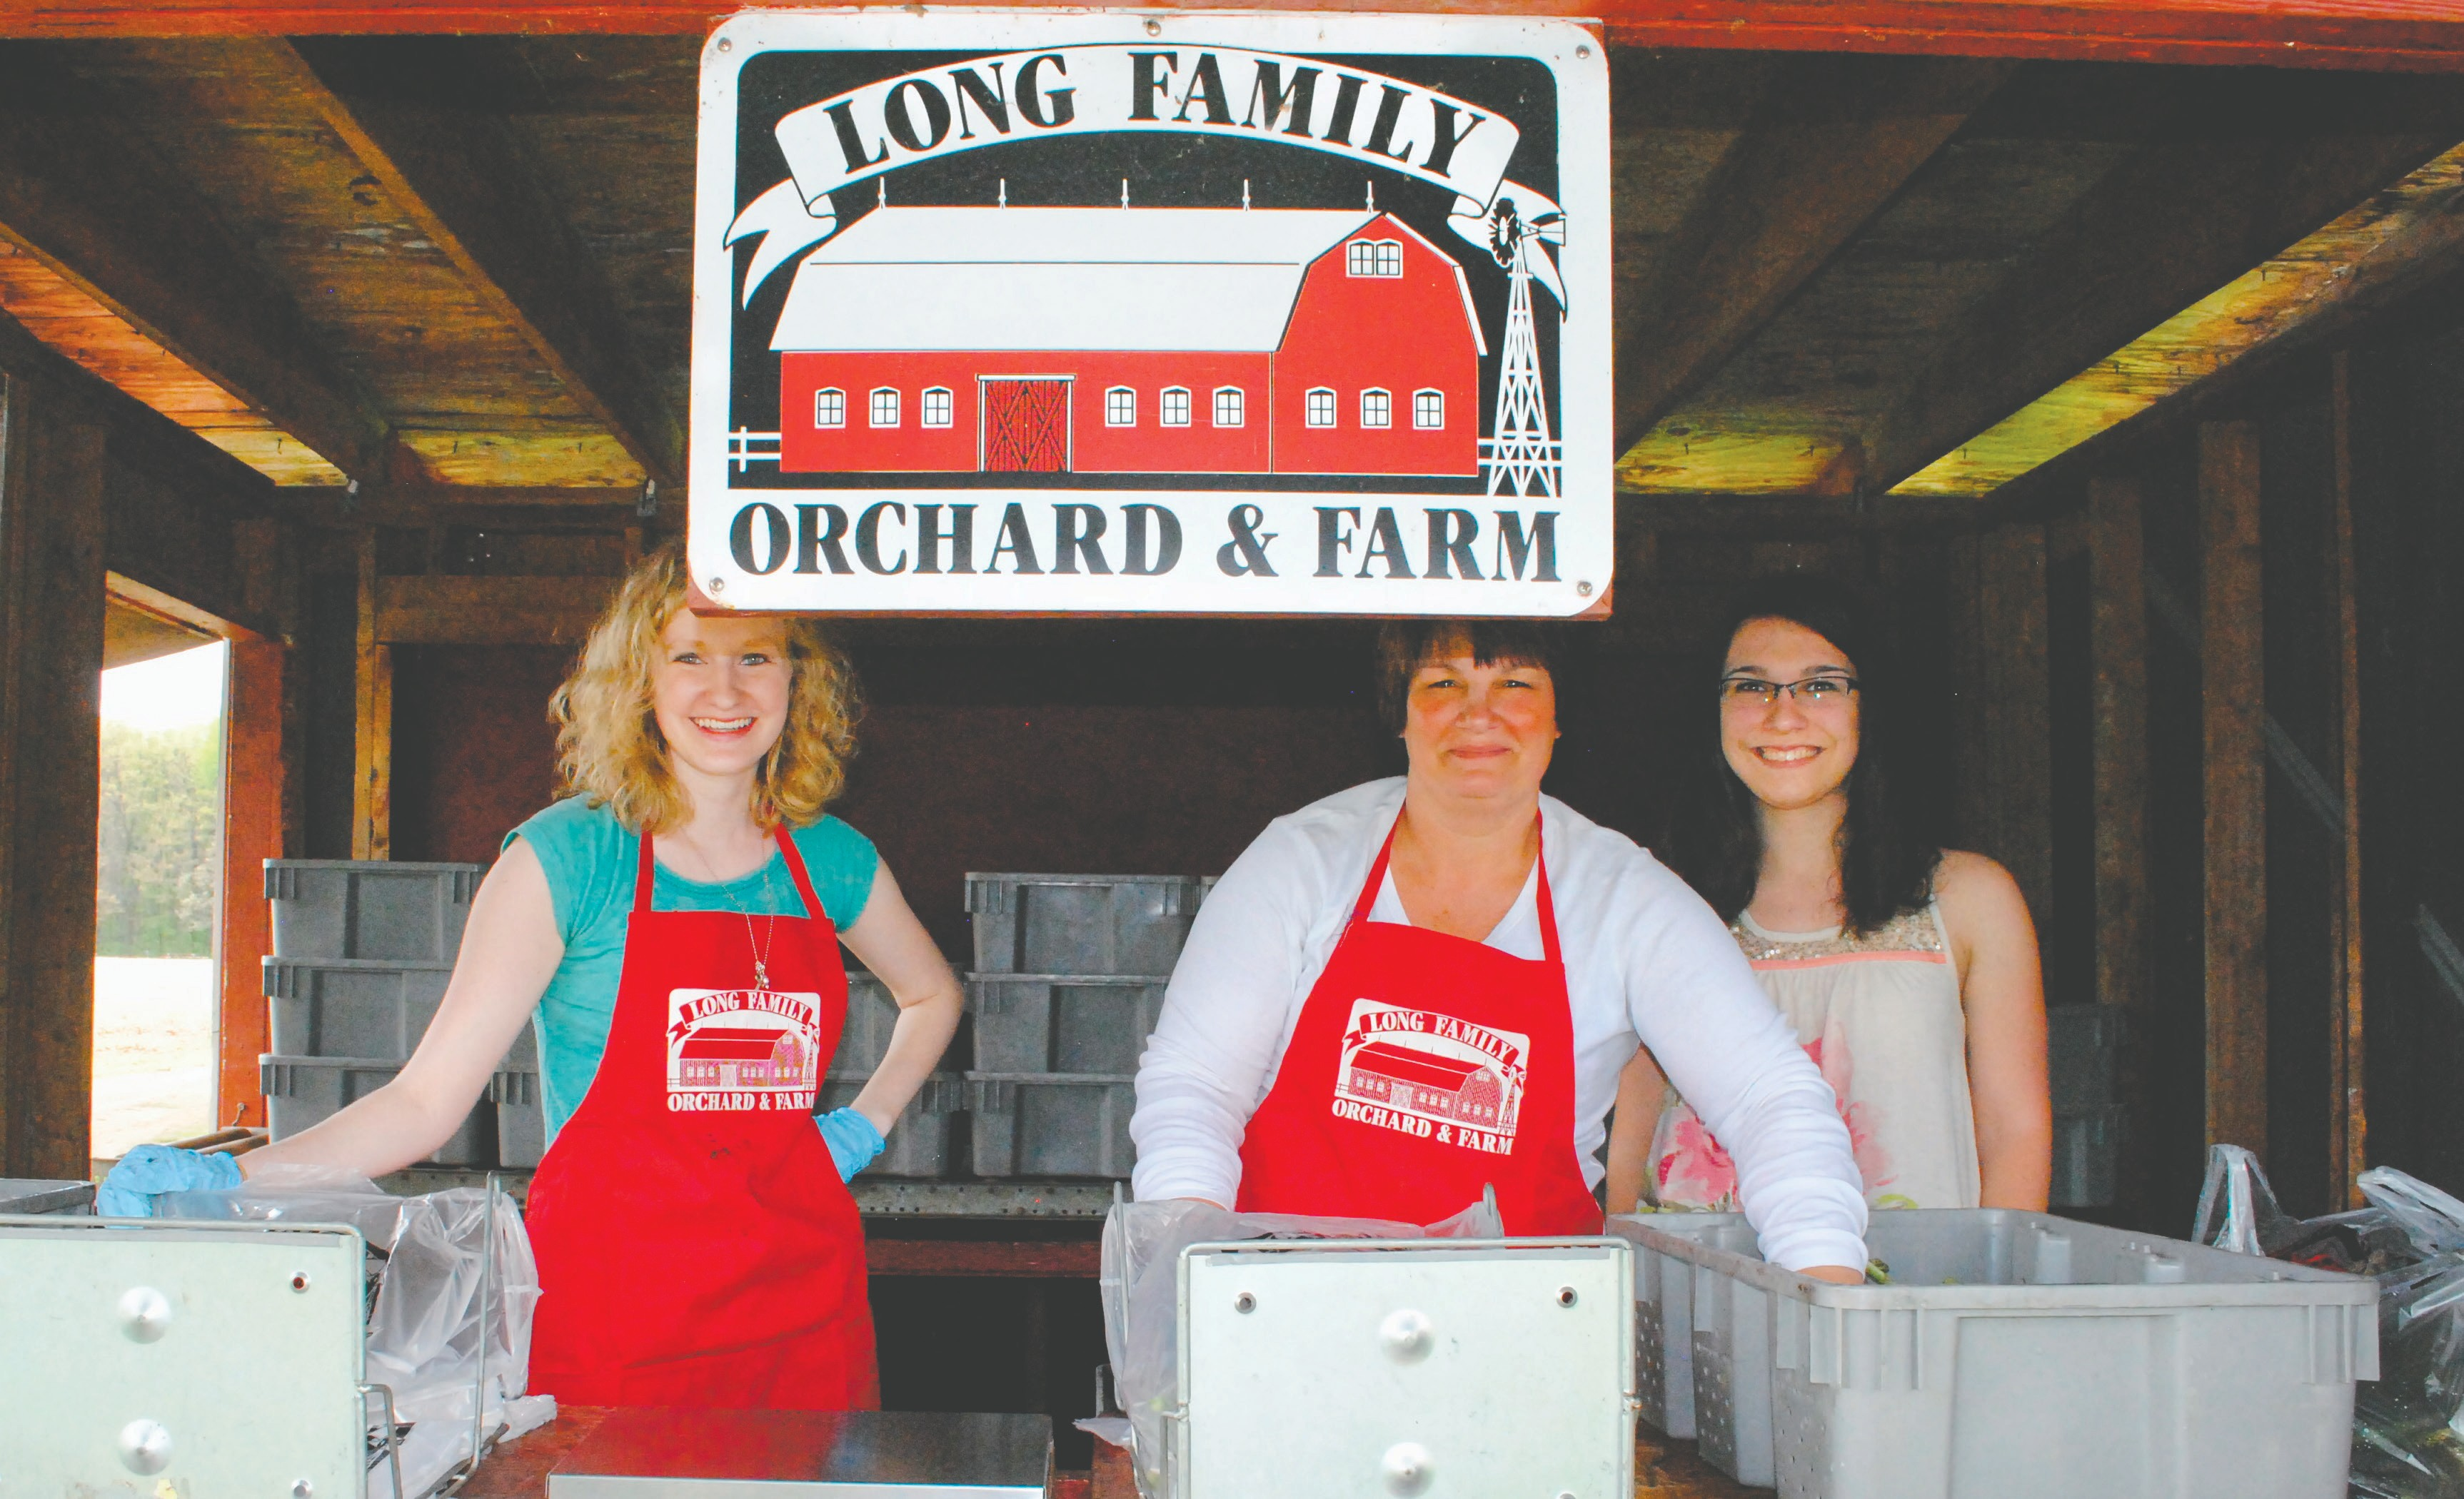 Long Family Orchard And Farm Now Open Offering Asparagus And More The Spinal Column